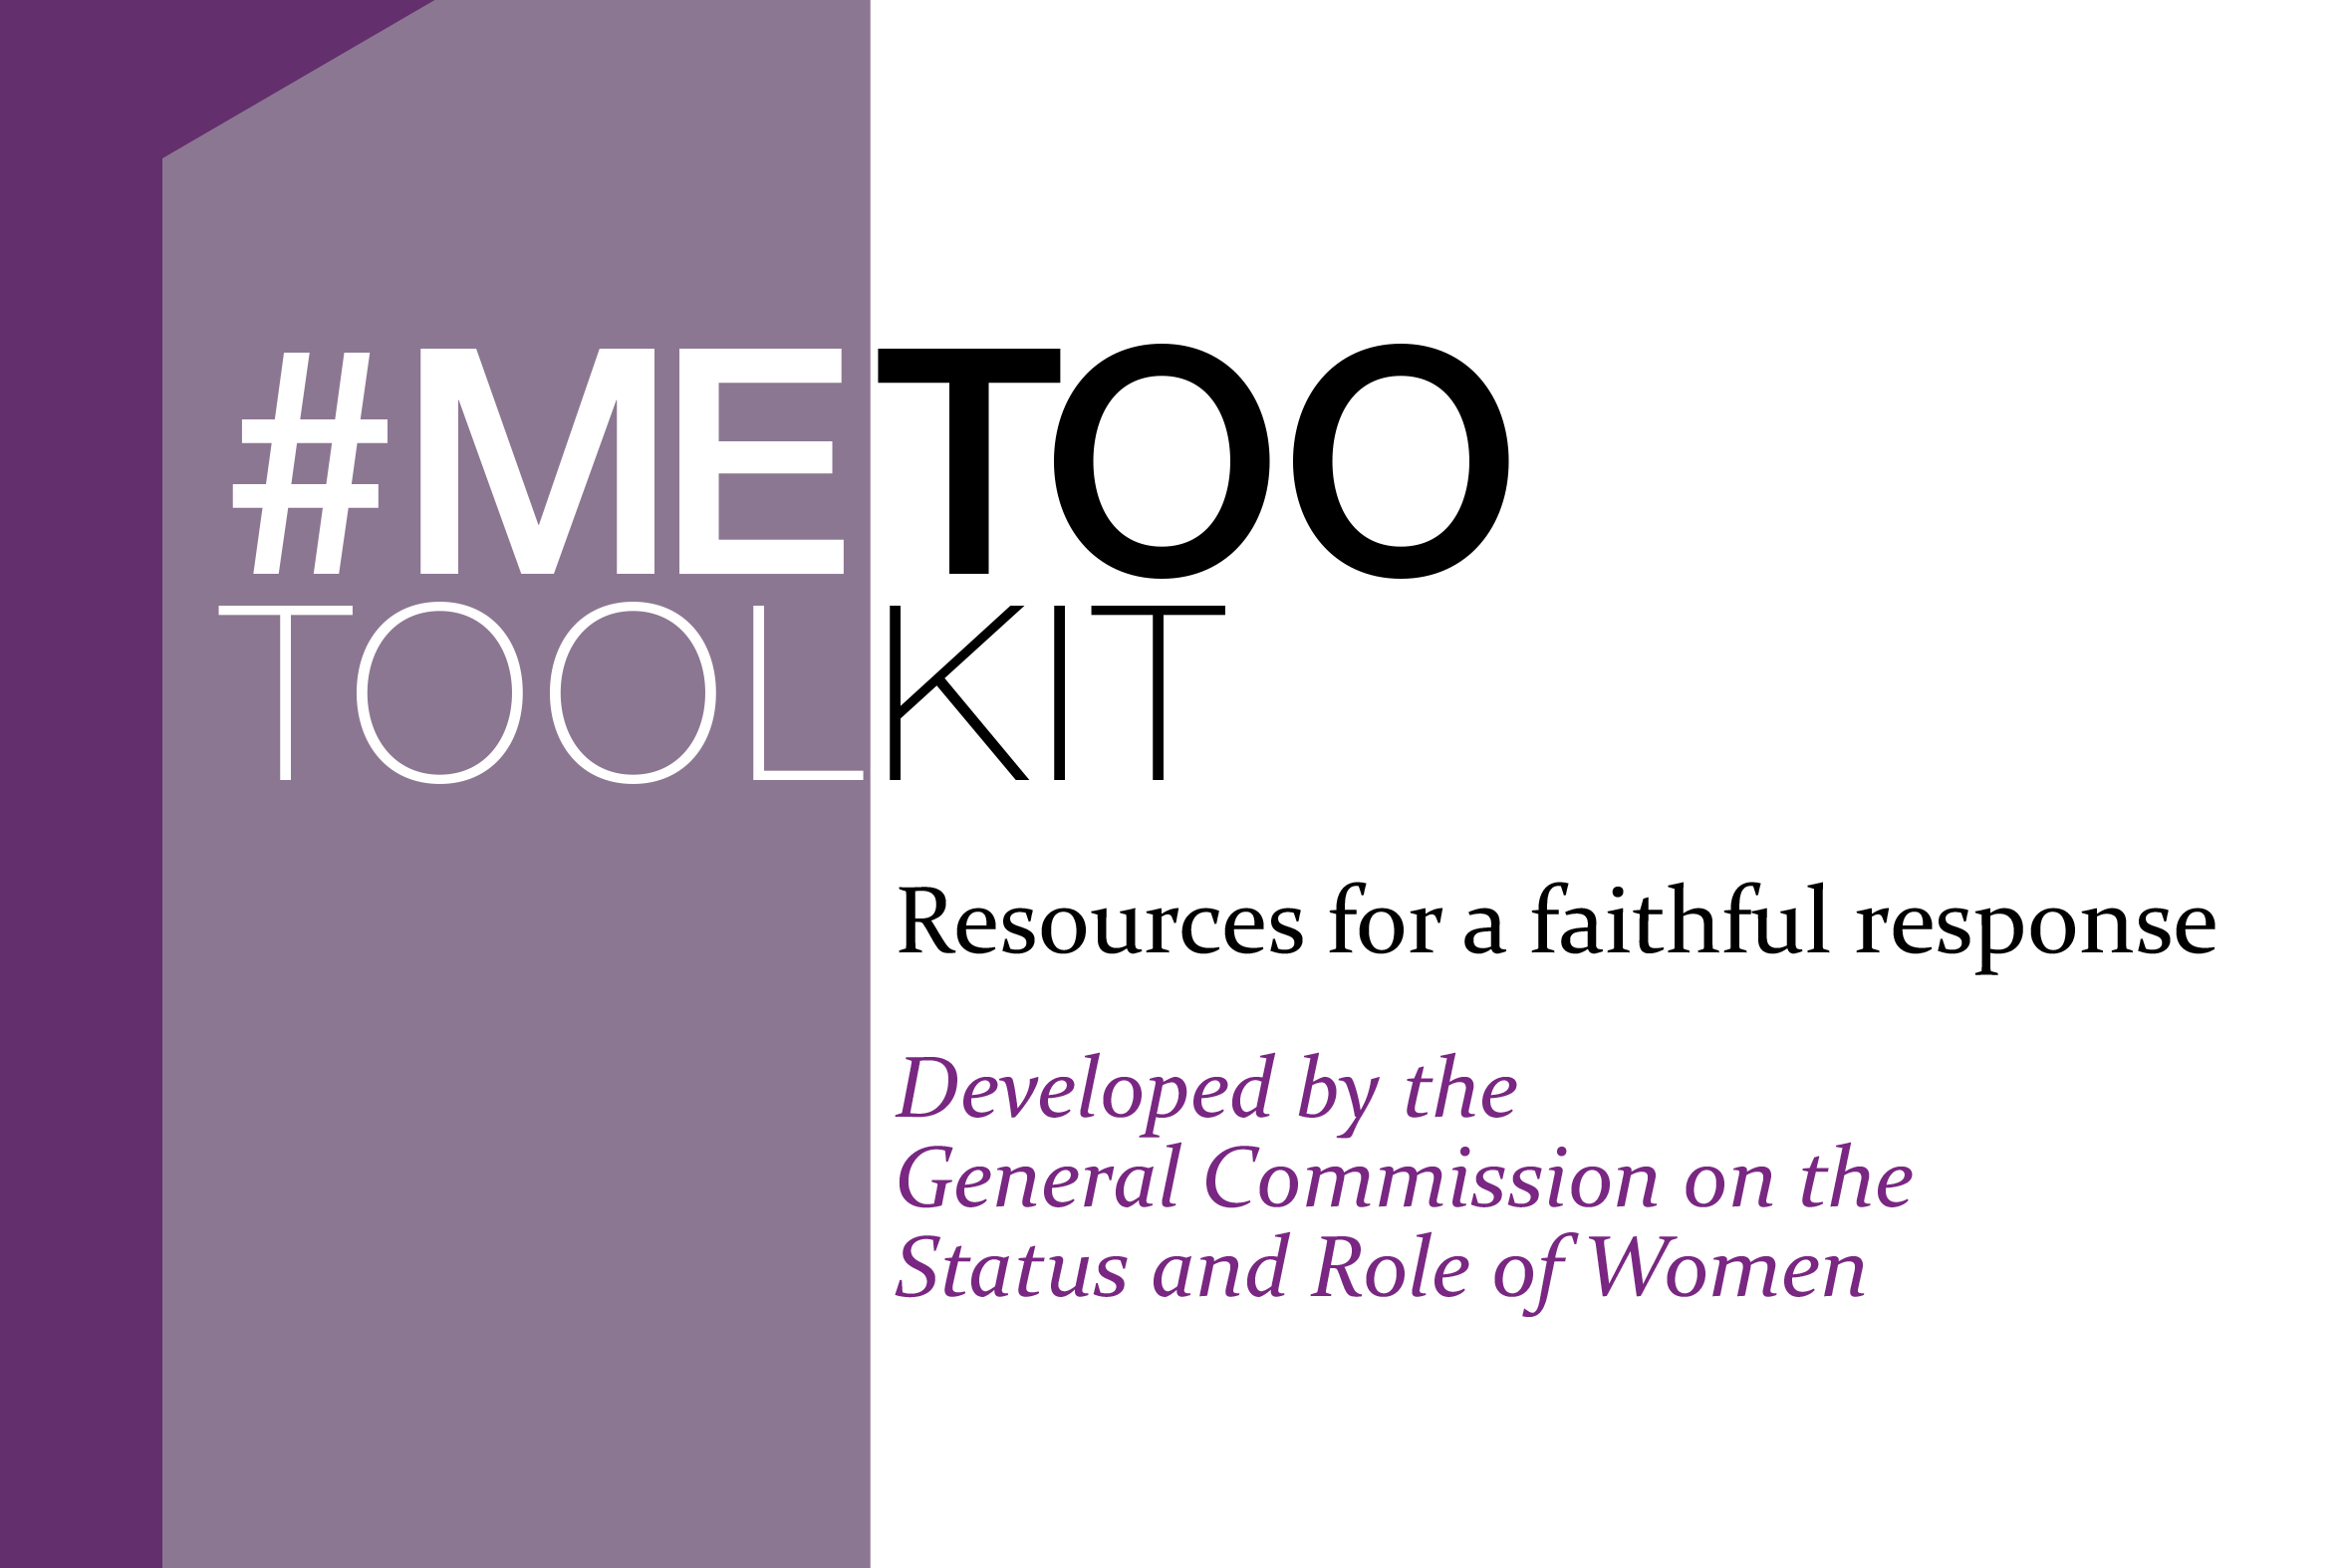 Resources for a faithful response to the problem of sexual misconduct by the Commission on the Status and Role of Women.